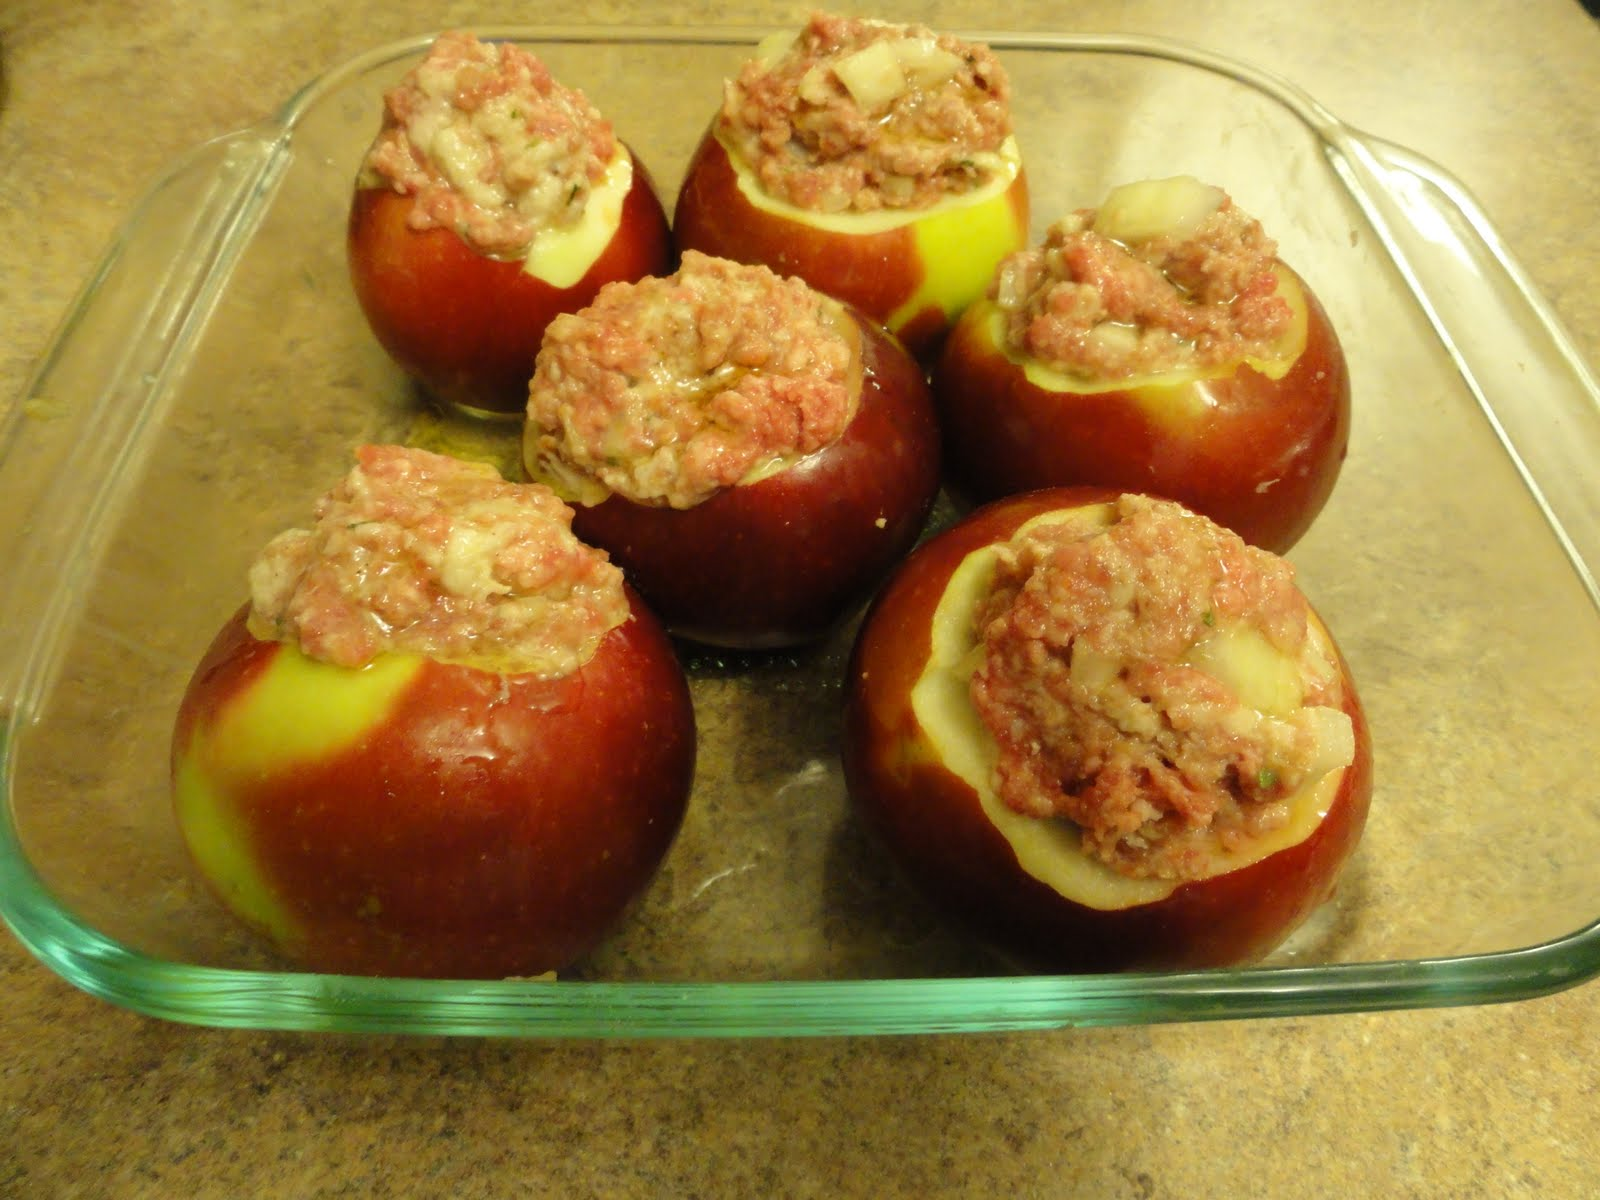 My Kitchen, My Sanctuary: Stuffed Baked Apples